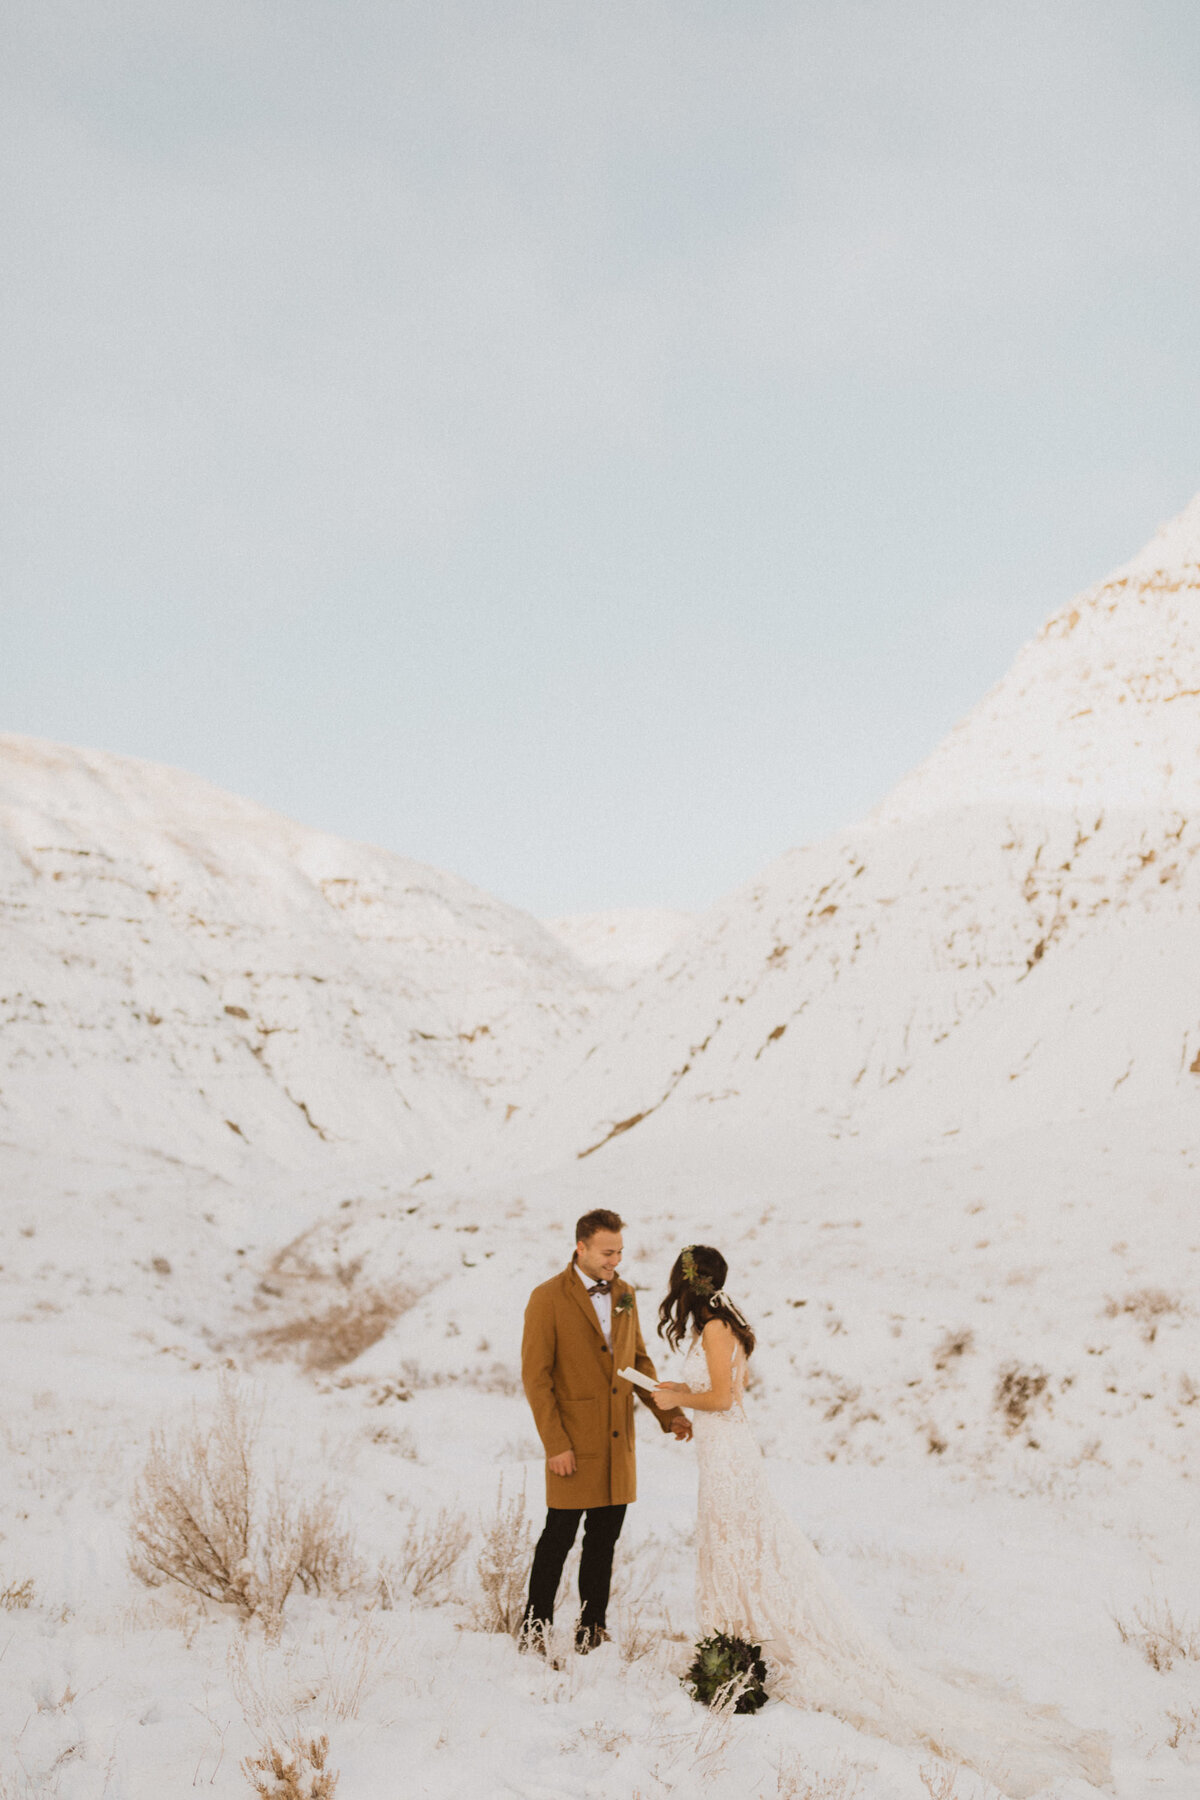 liv_hettinga_photography_drumheller_winter_elopement-12